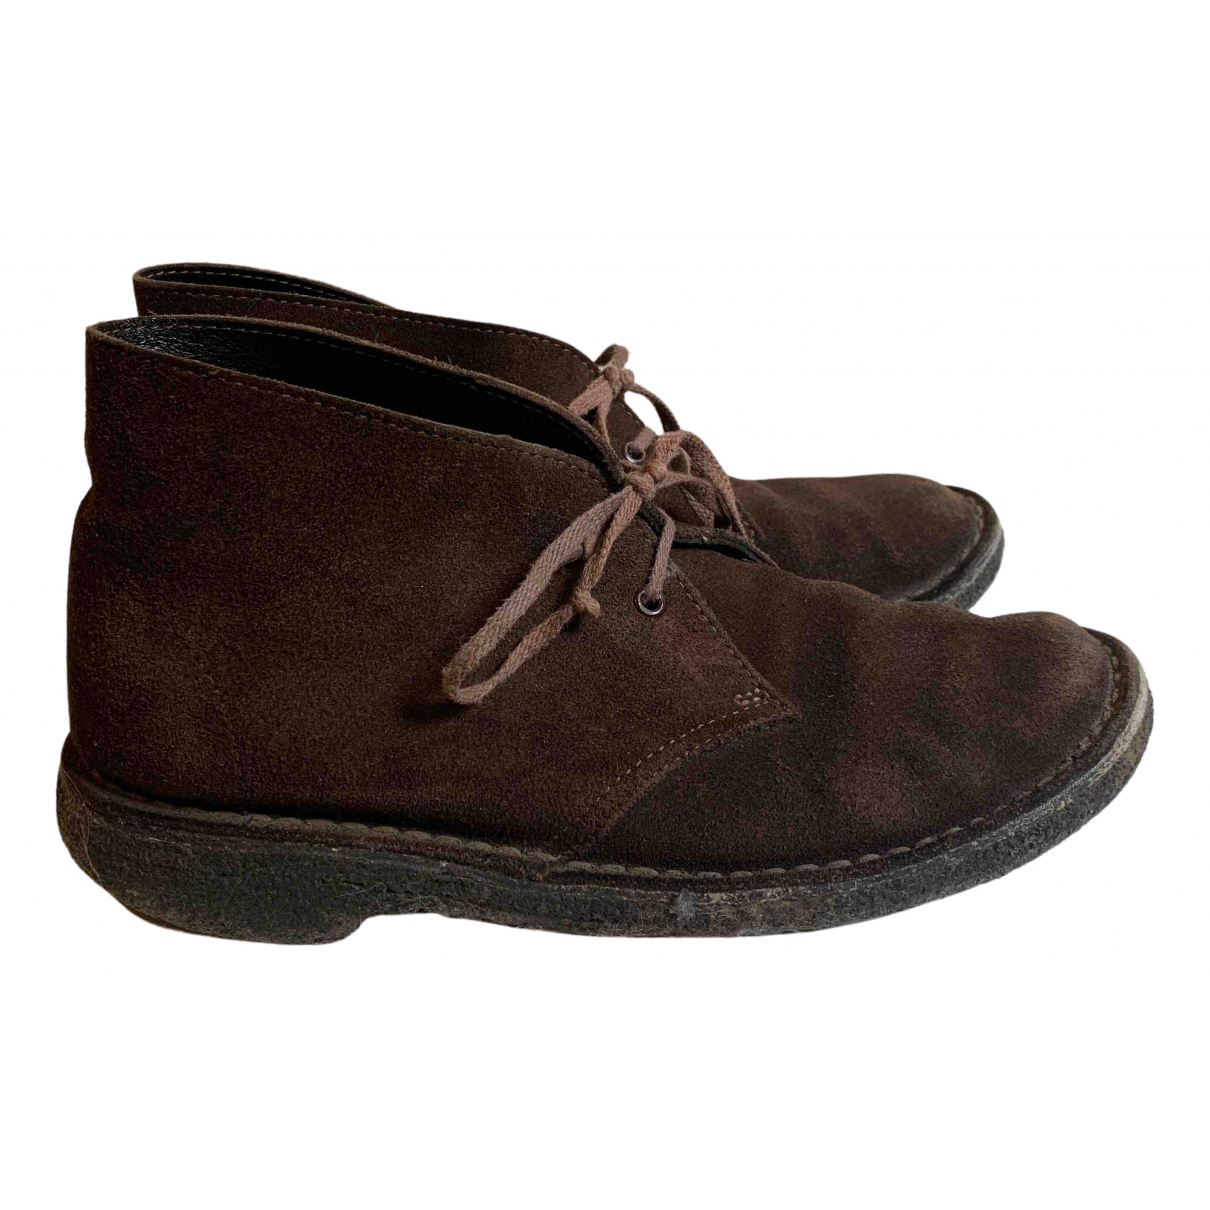 Clarks N Brown Suede Boots for Women 4.5 UK